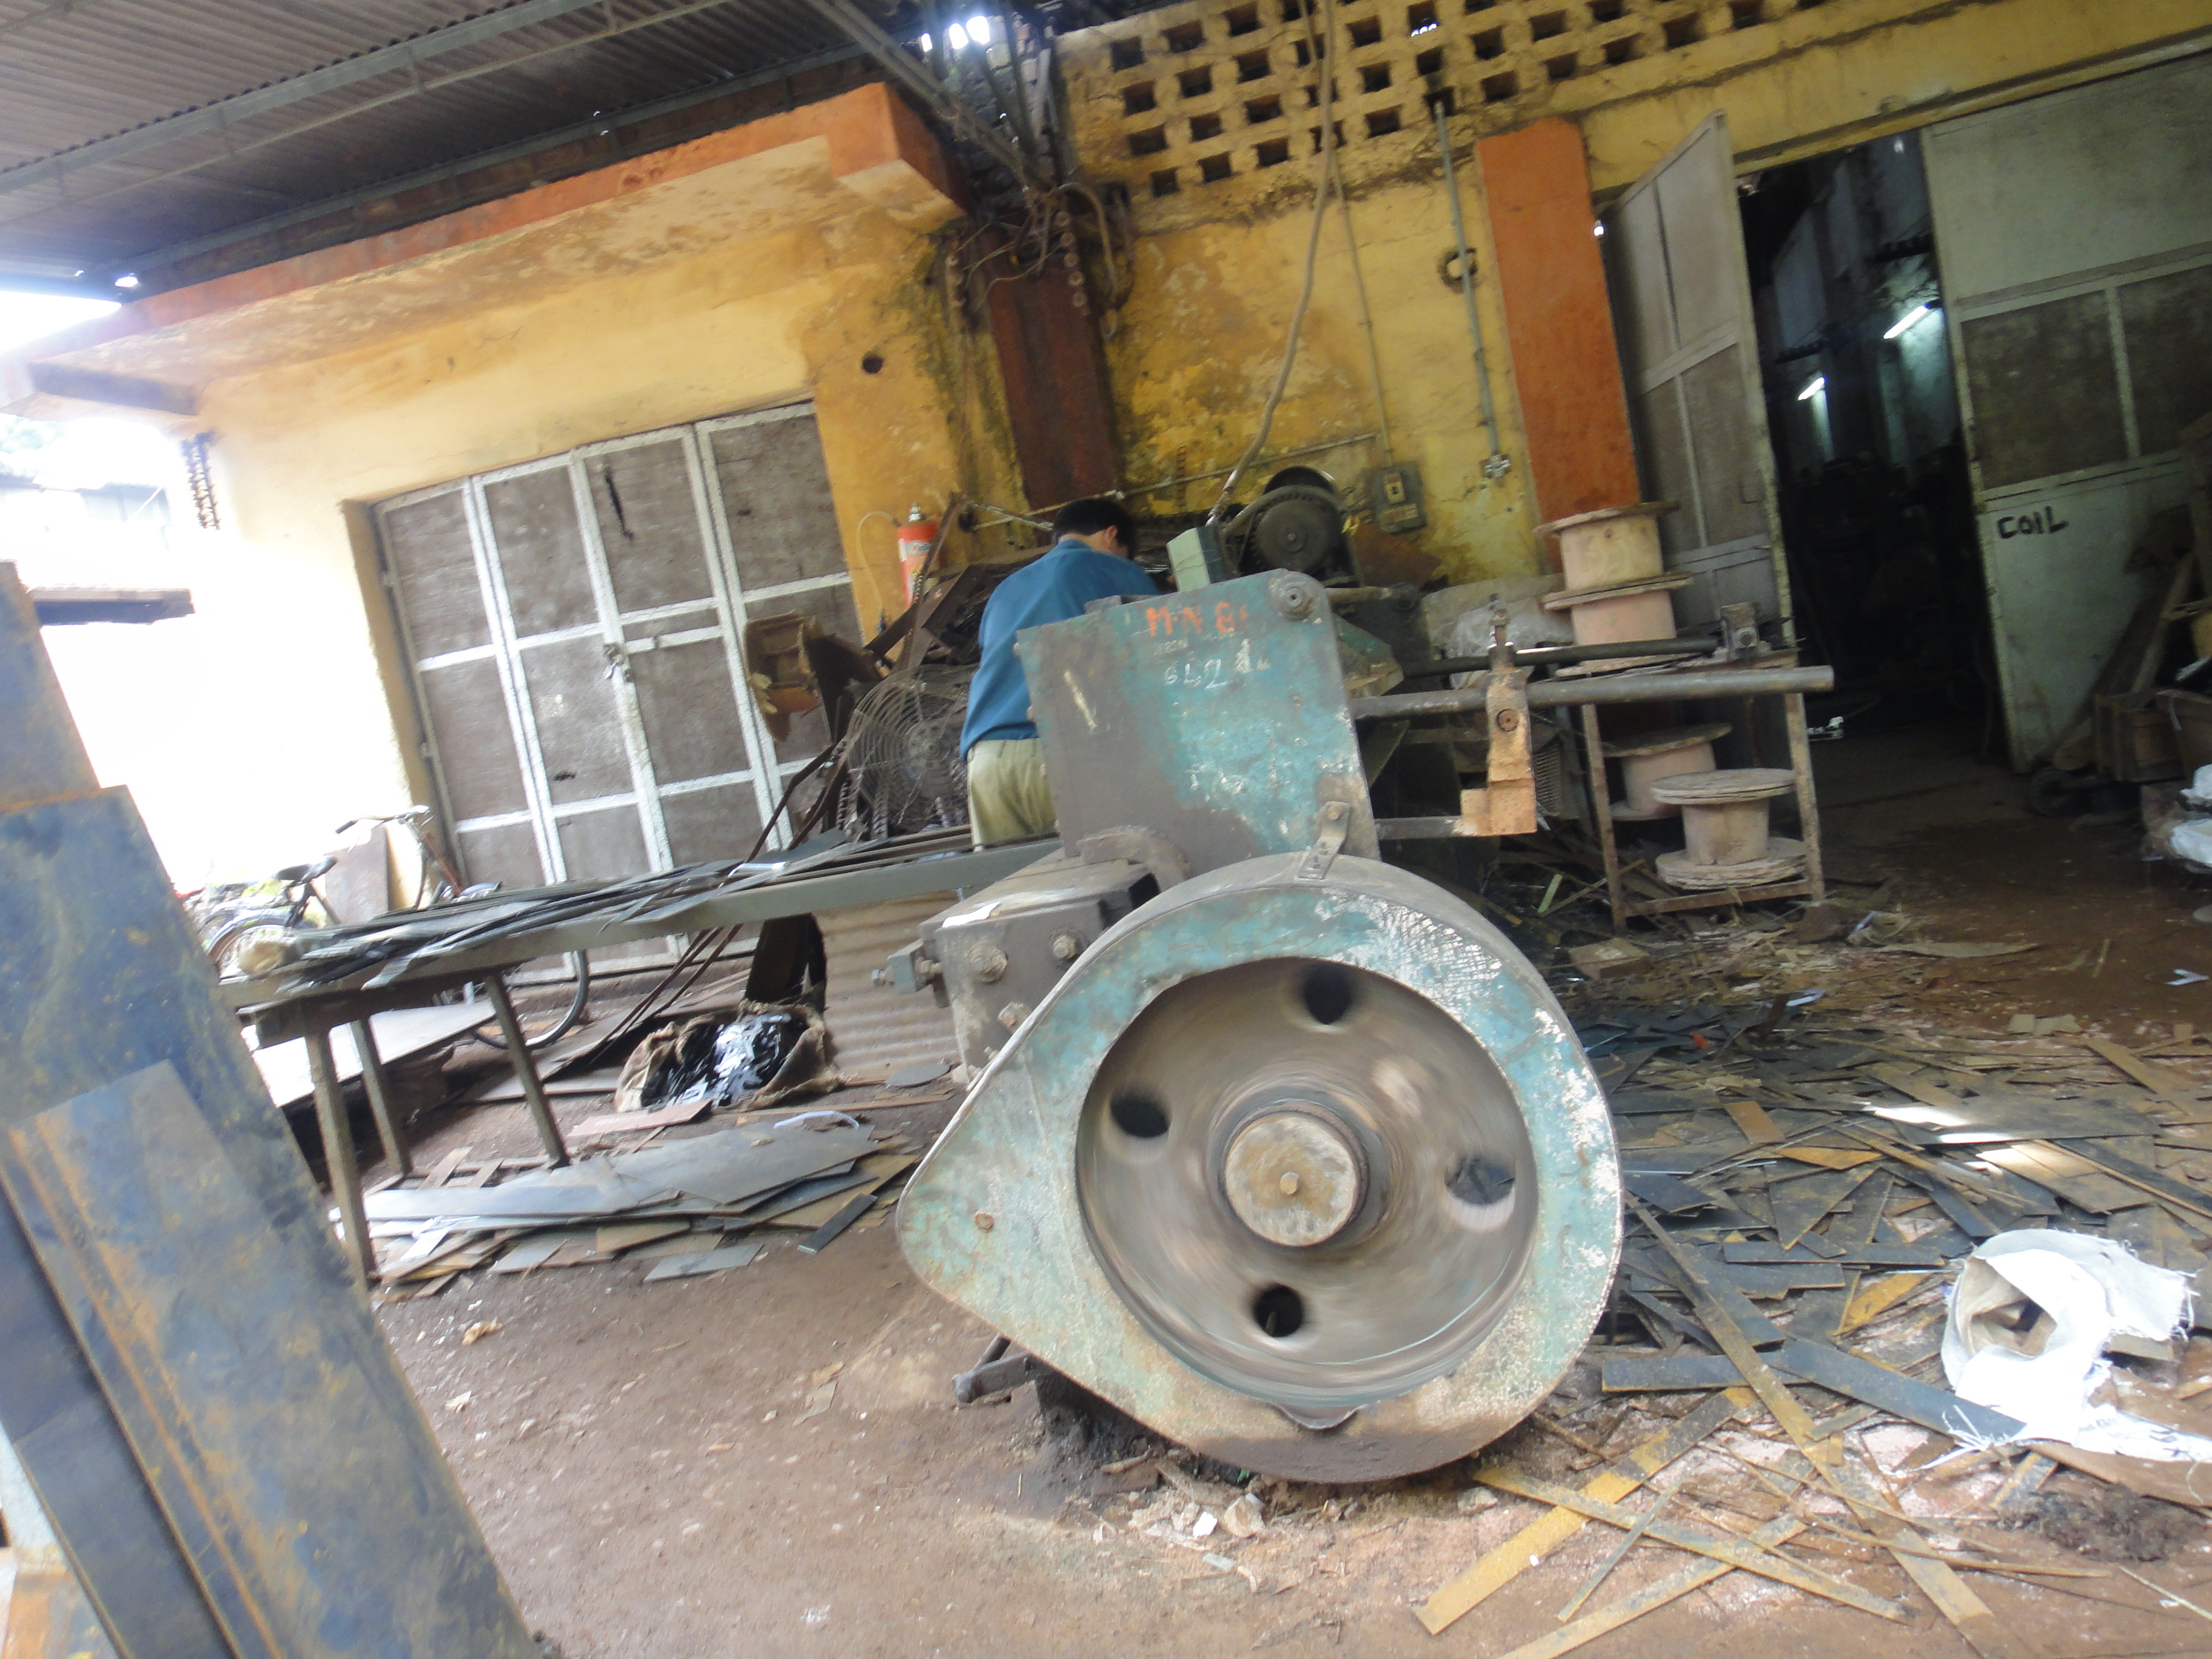 A steel shearing machine. Be careful, you don't want to be in it!